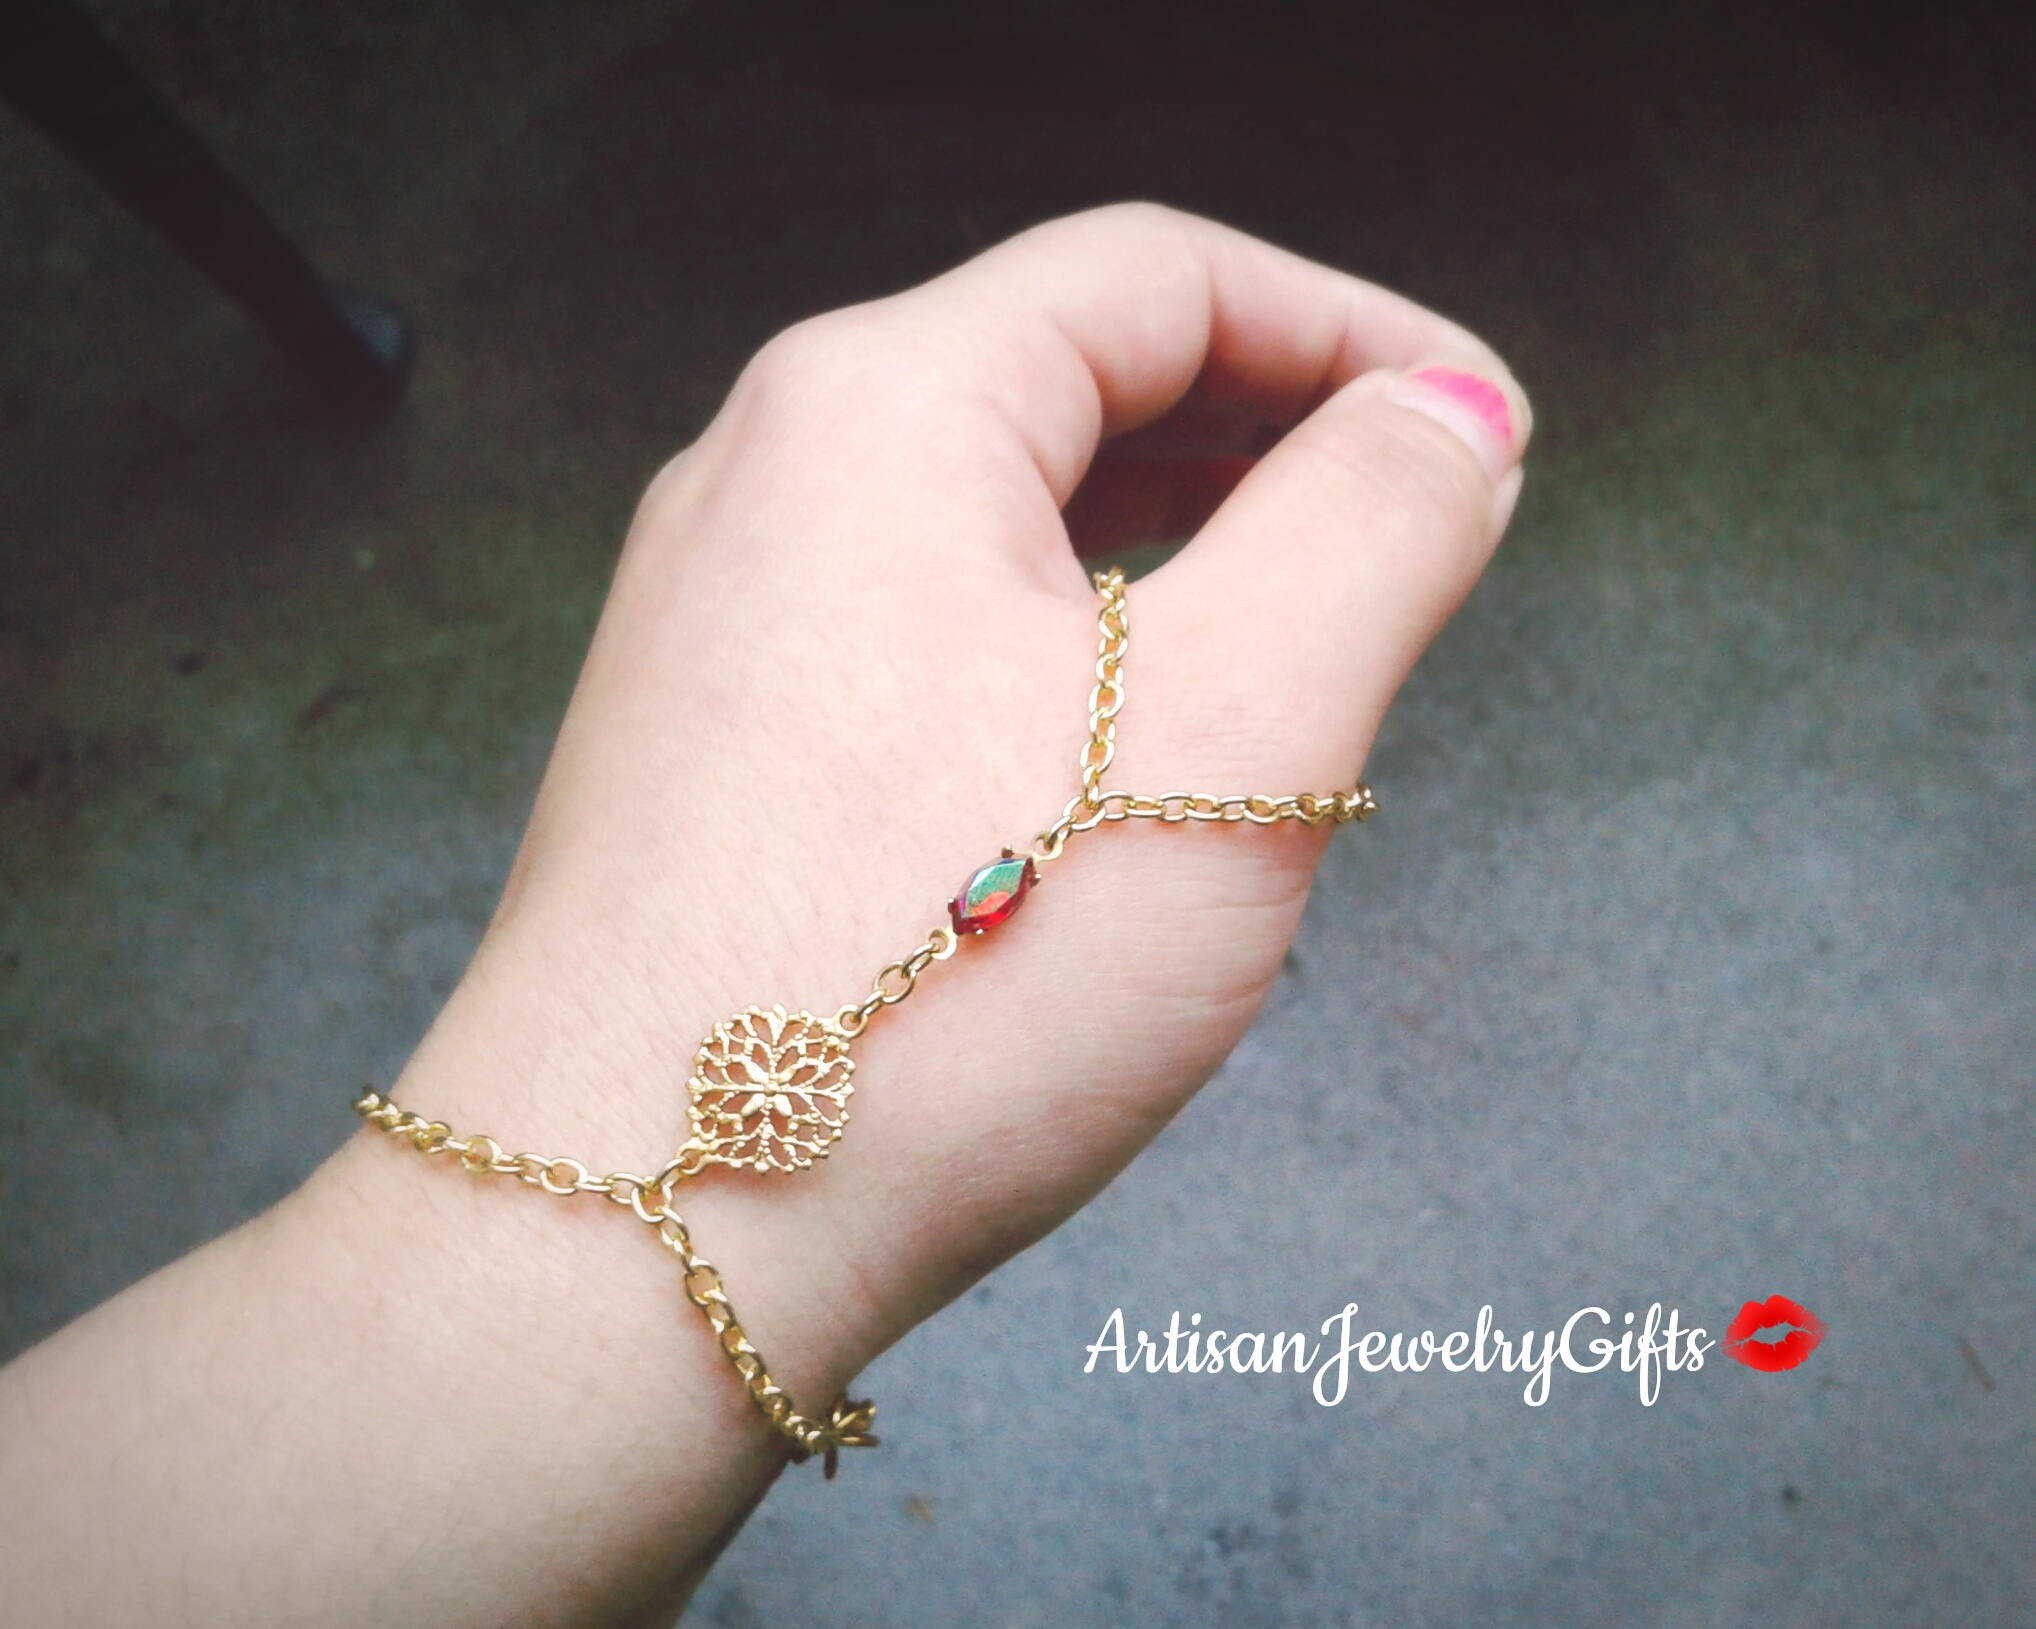 Buy Slave Boho hand jewelry picture trends